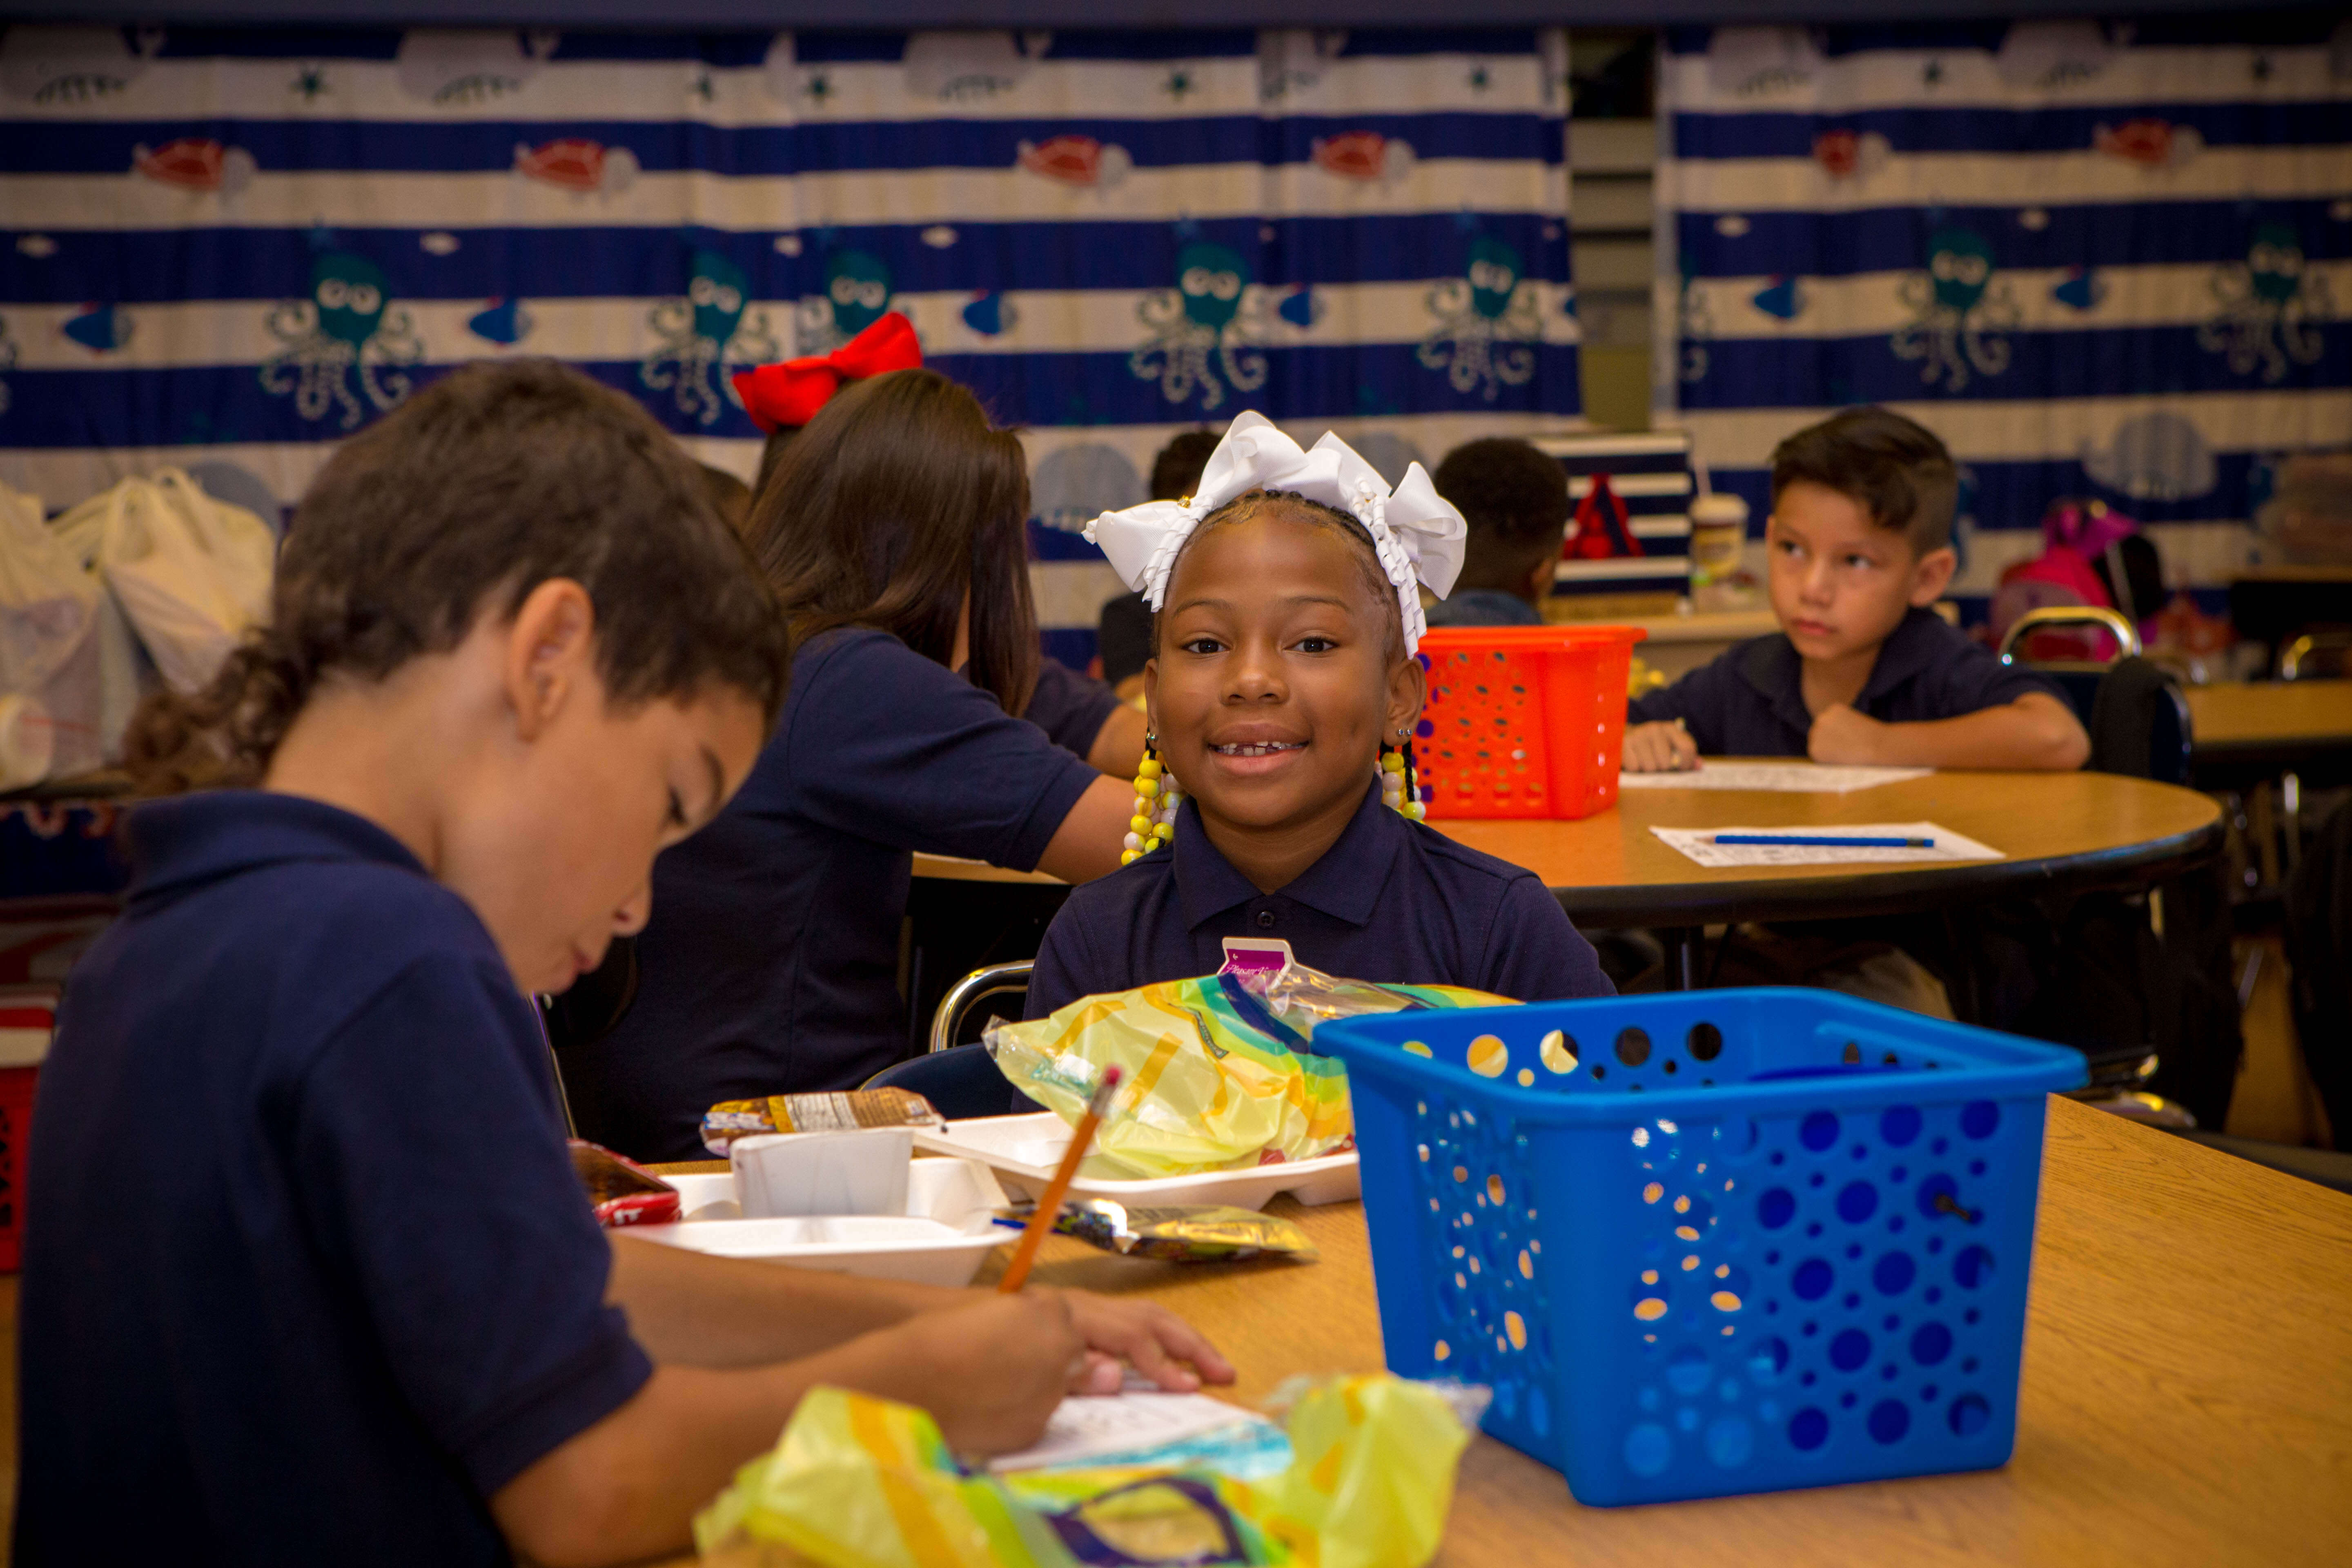 students with lunch trays in classroom